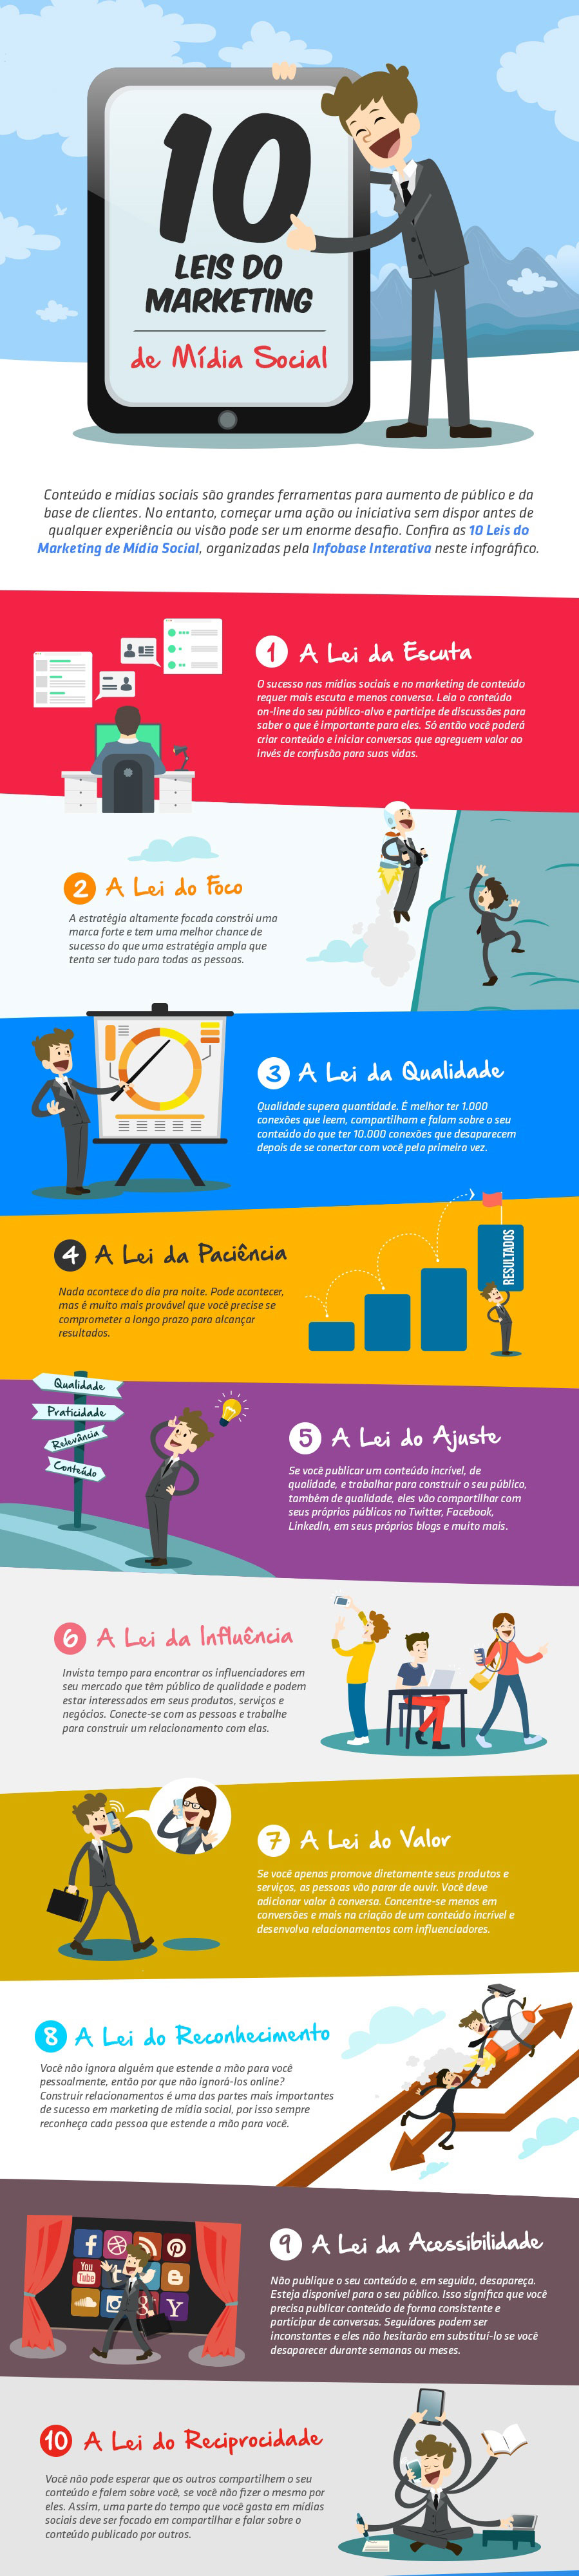 Infográfico: as 10 Leis do Marketing de Mídia Social